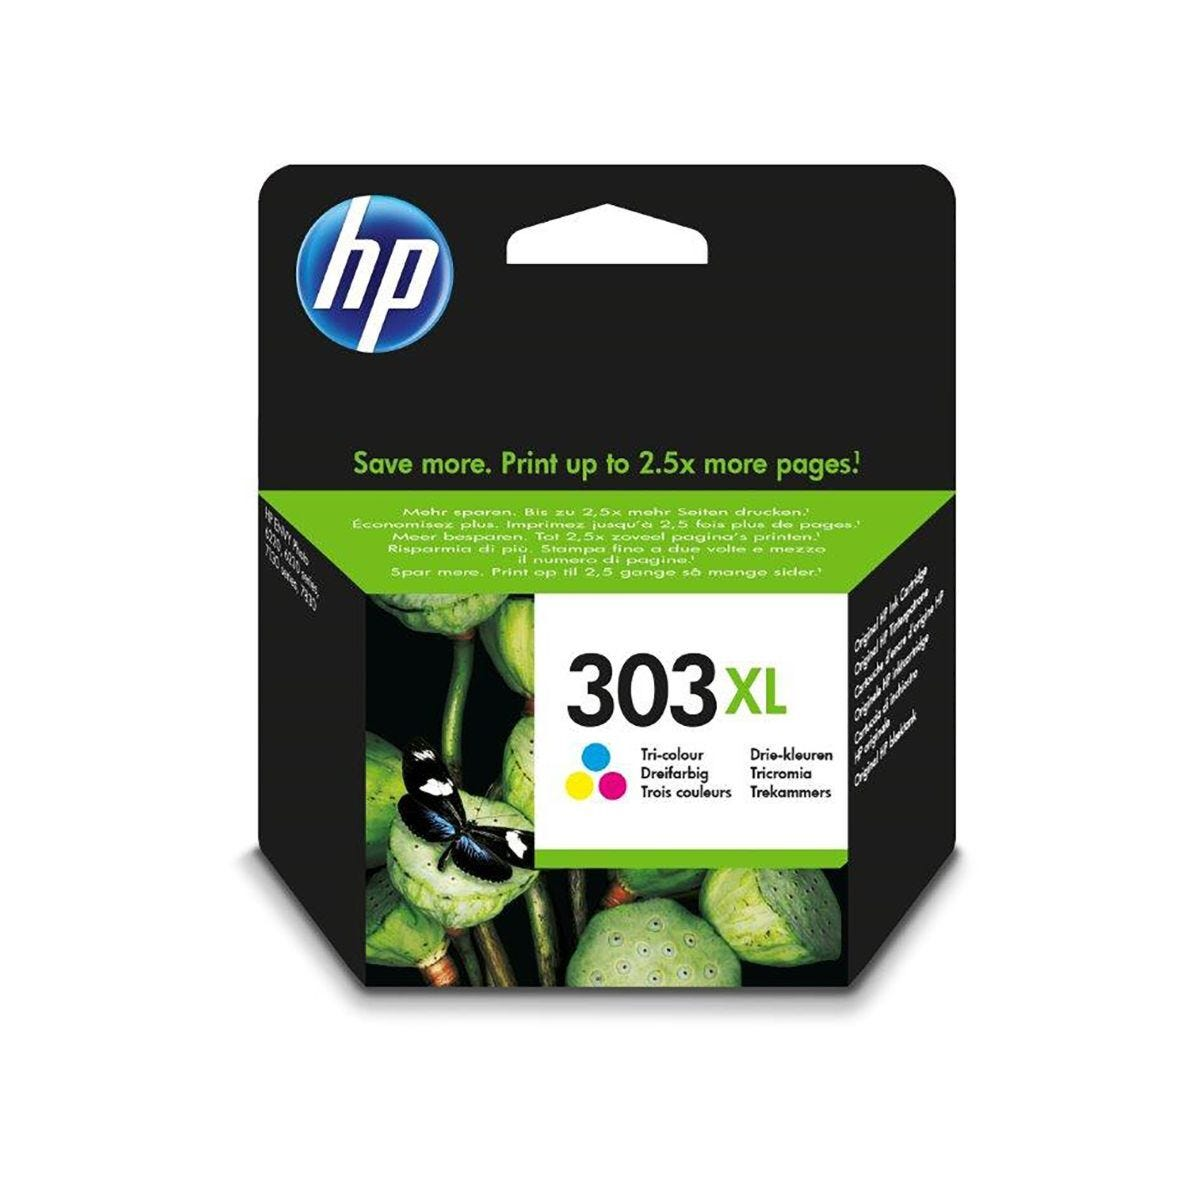 HP Ink Cartridge 303XL Tri-Colour Inkjet